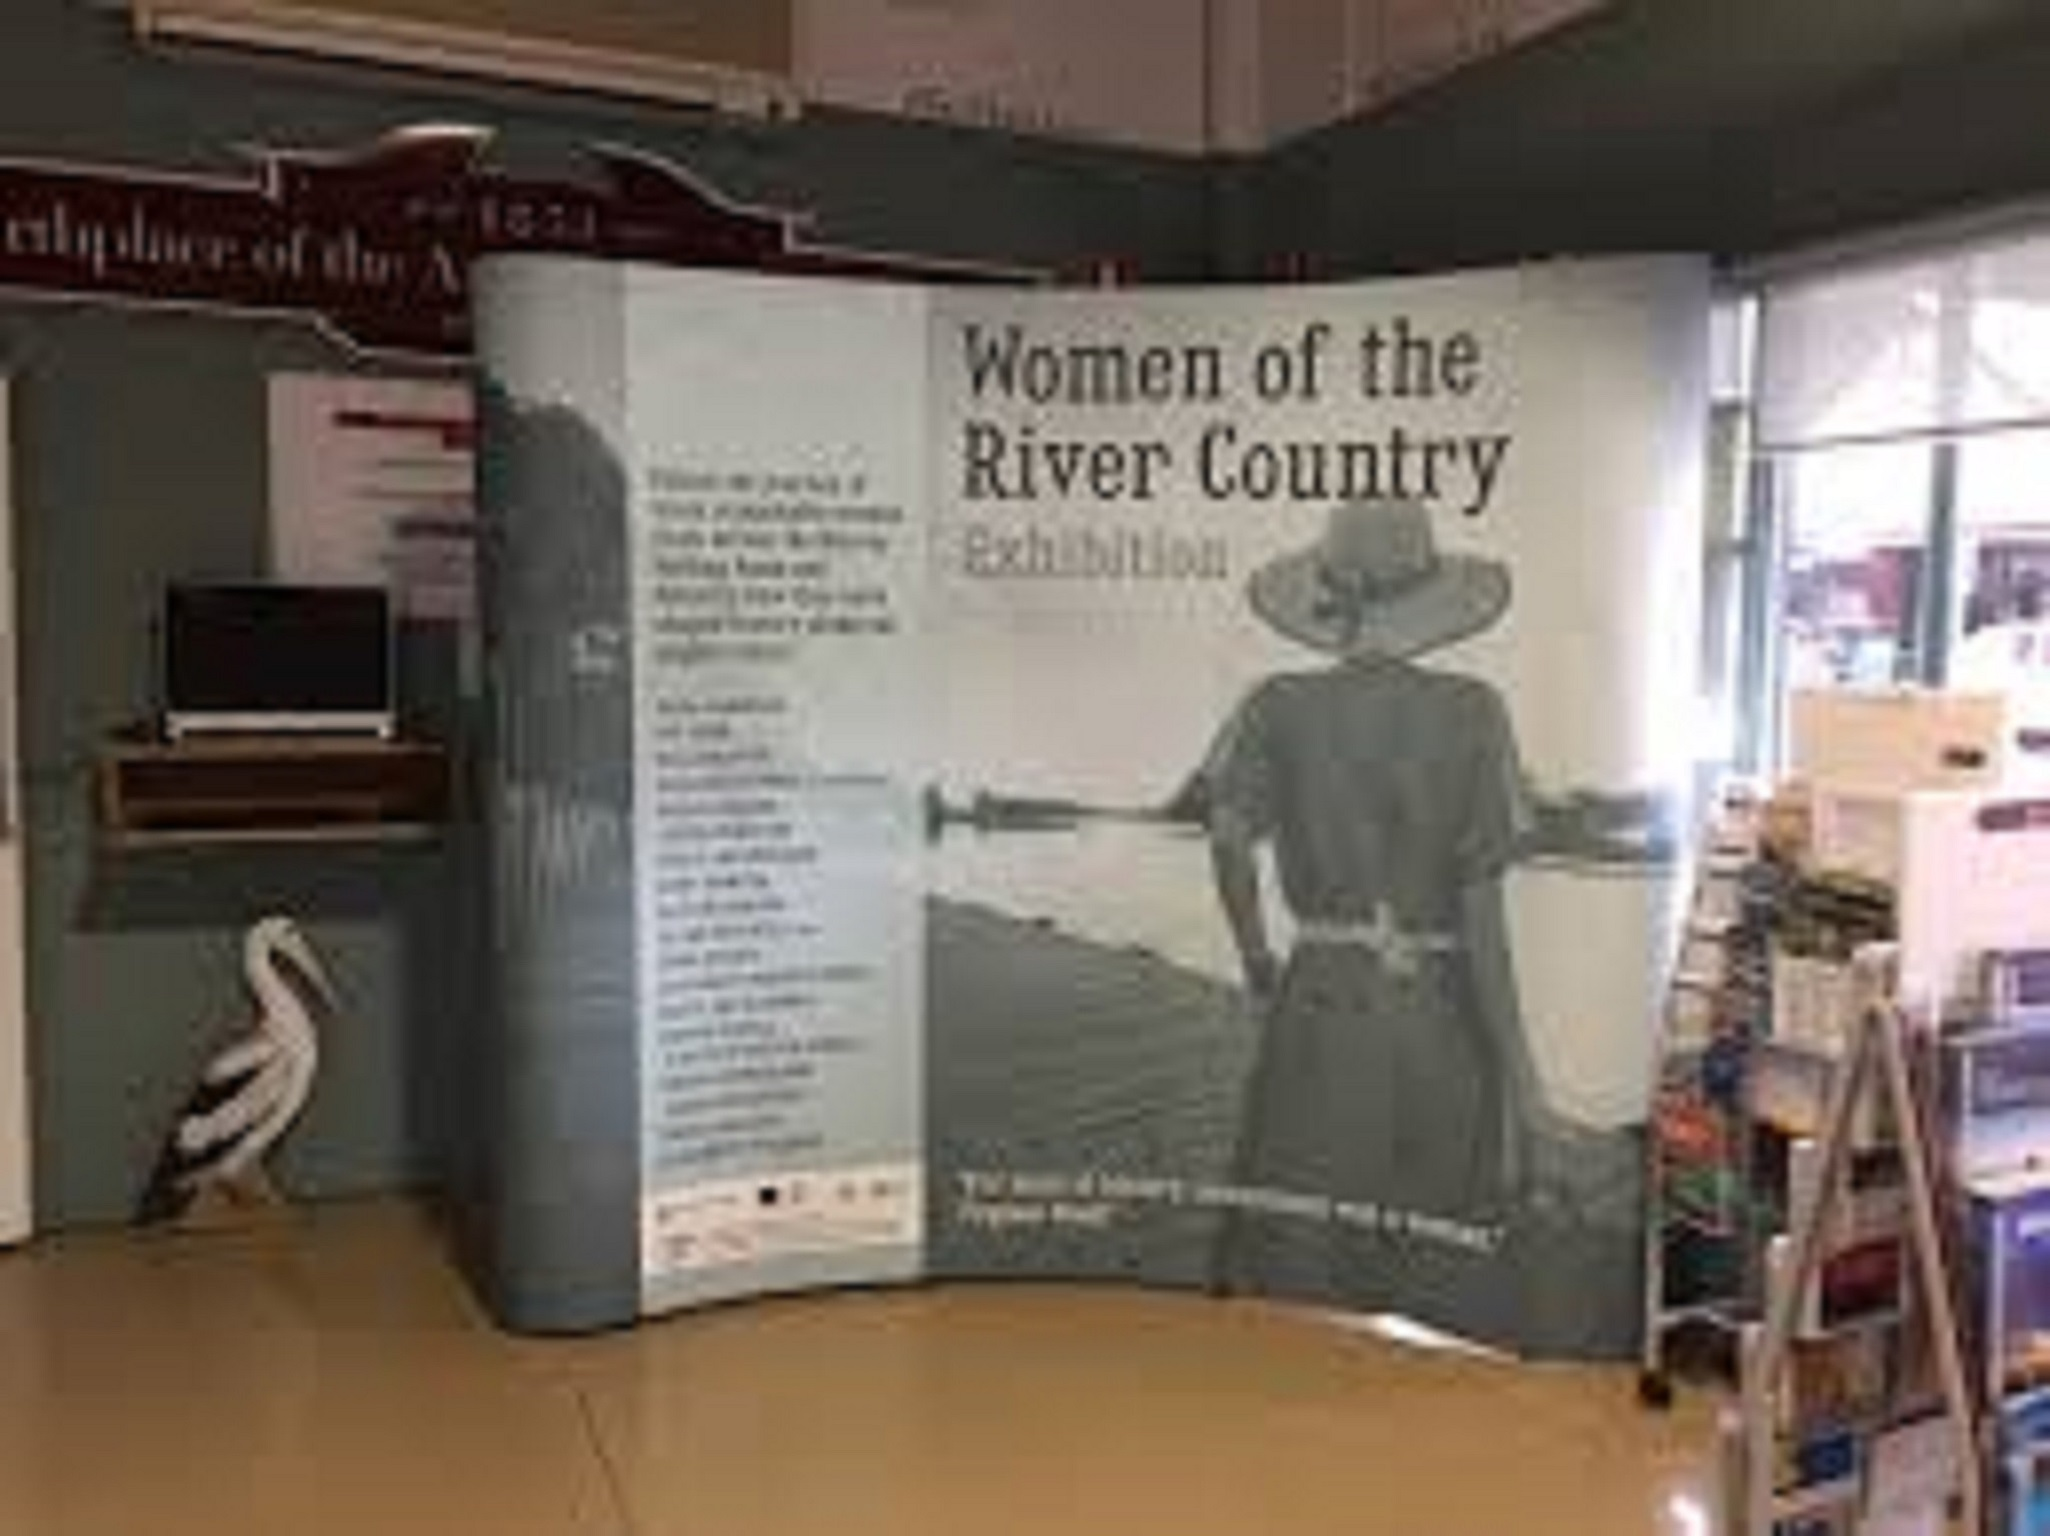 Women of the River Country